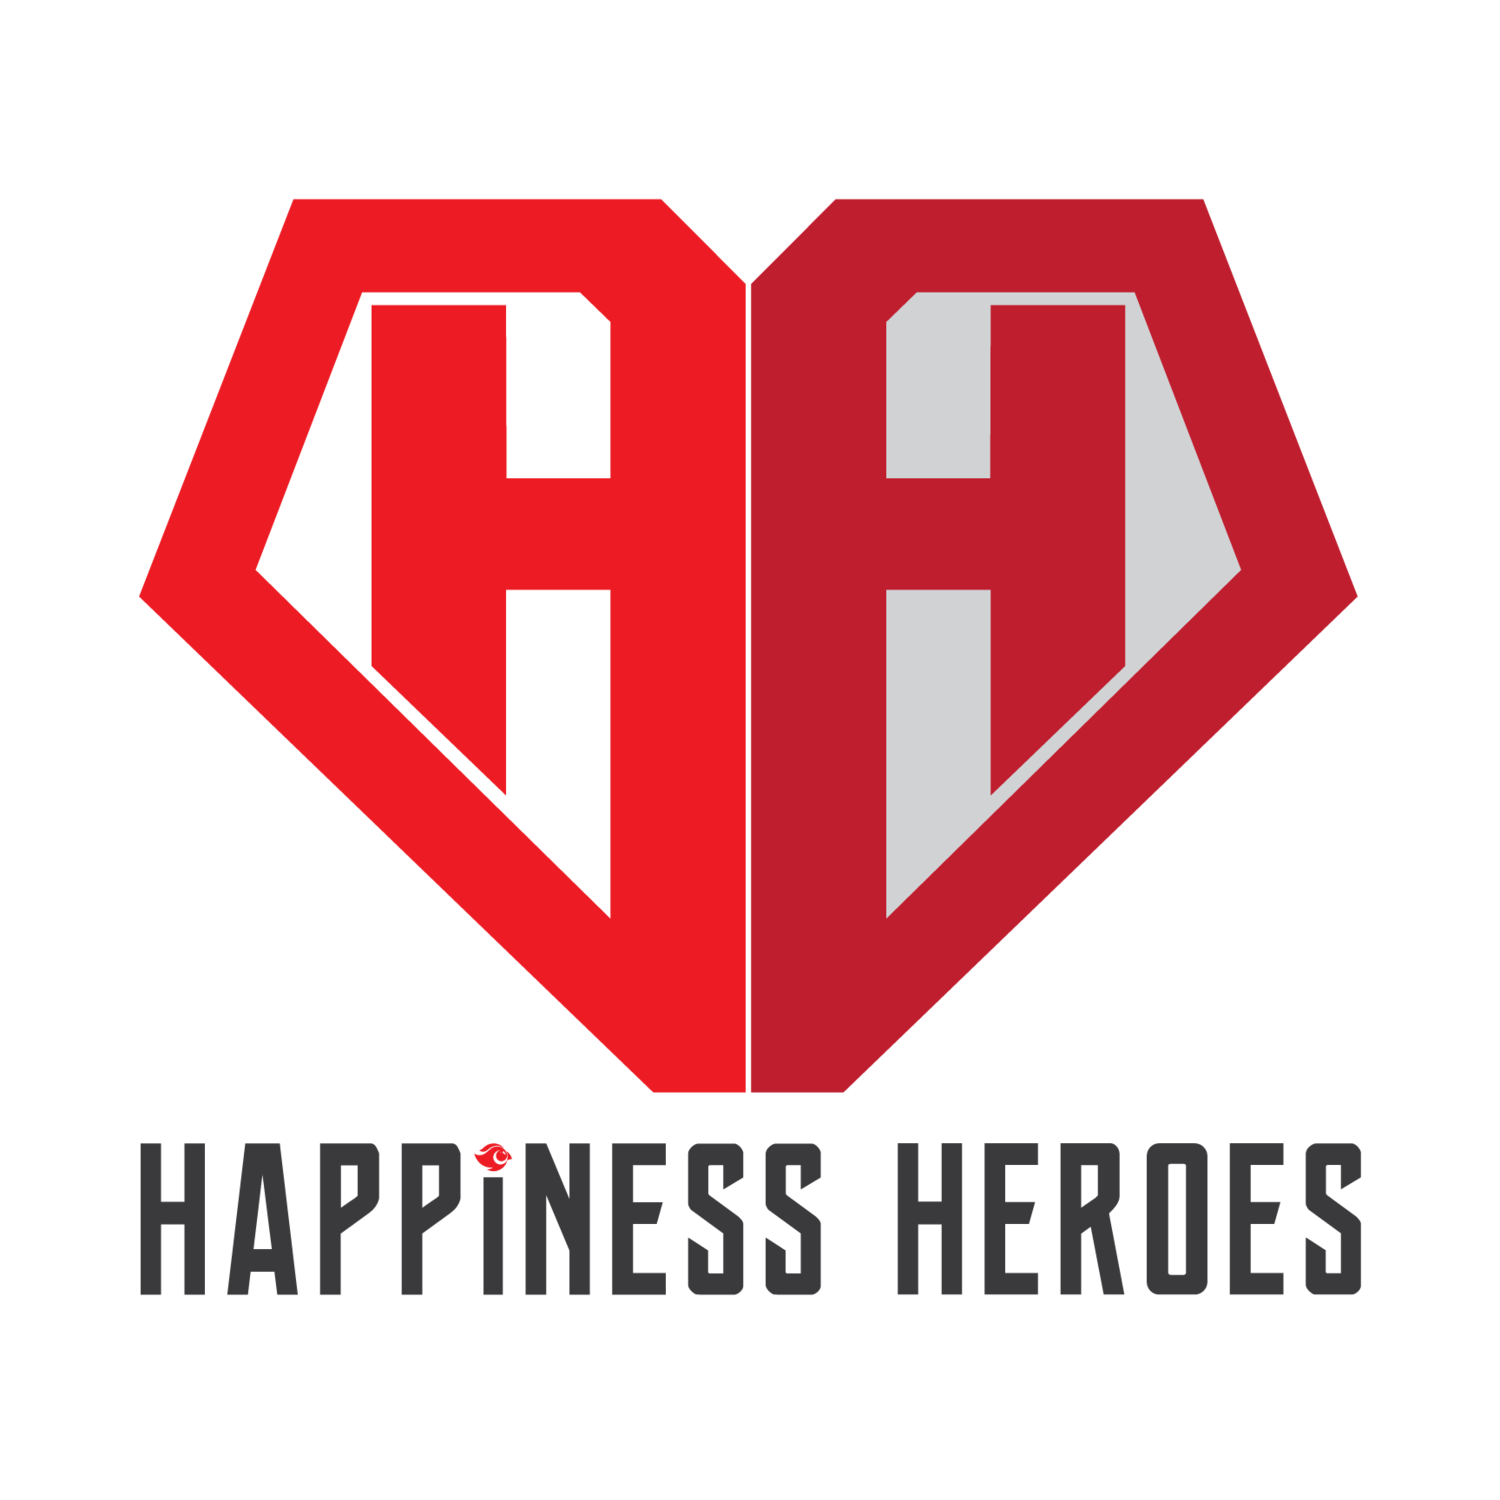 Happiness Heroes